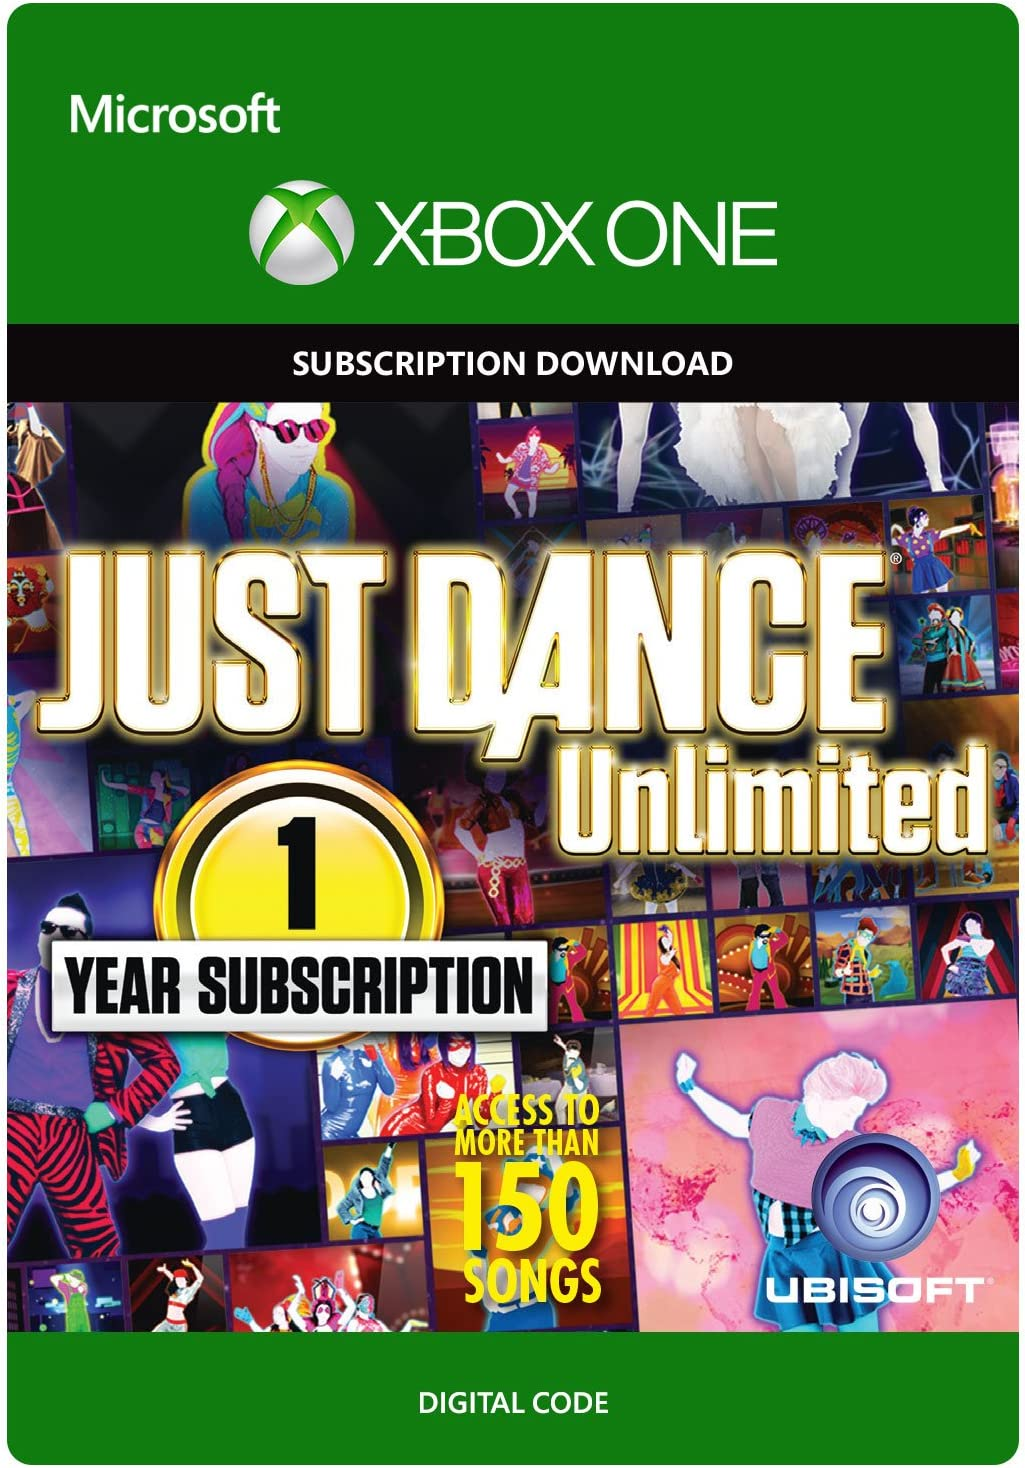 Amazon.com: Just Dance Unlimited: 1 Year Subscription - Xbox ...